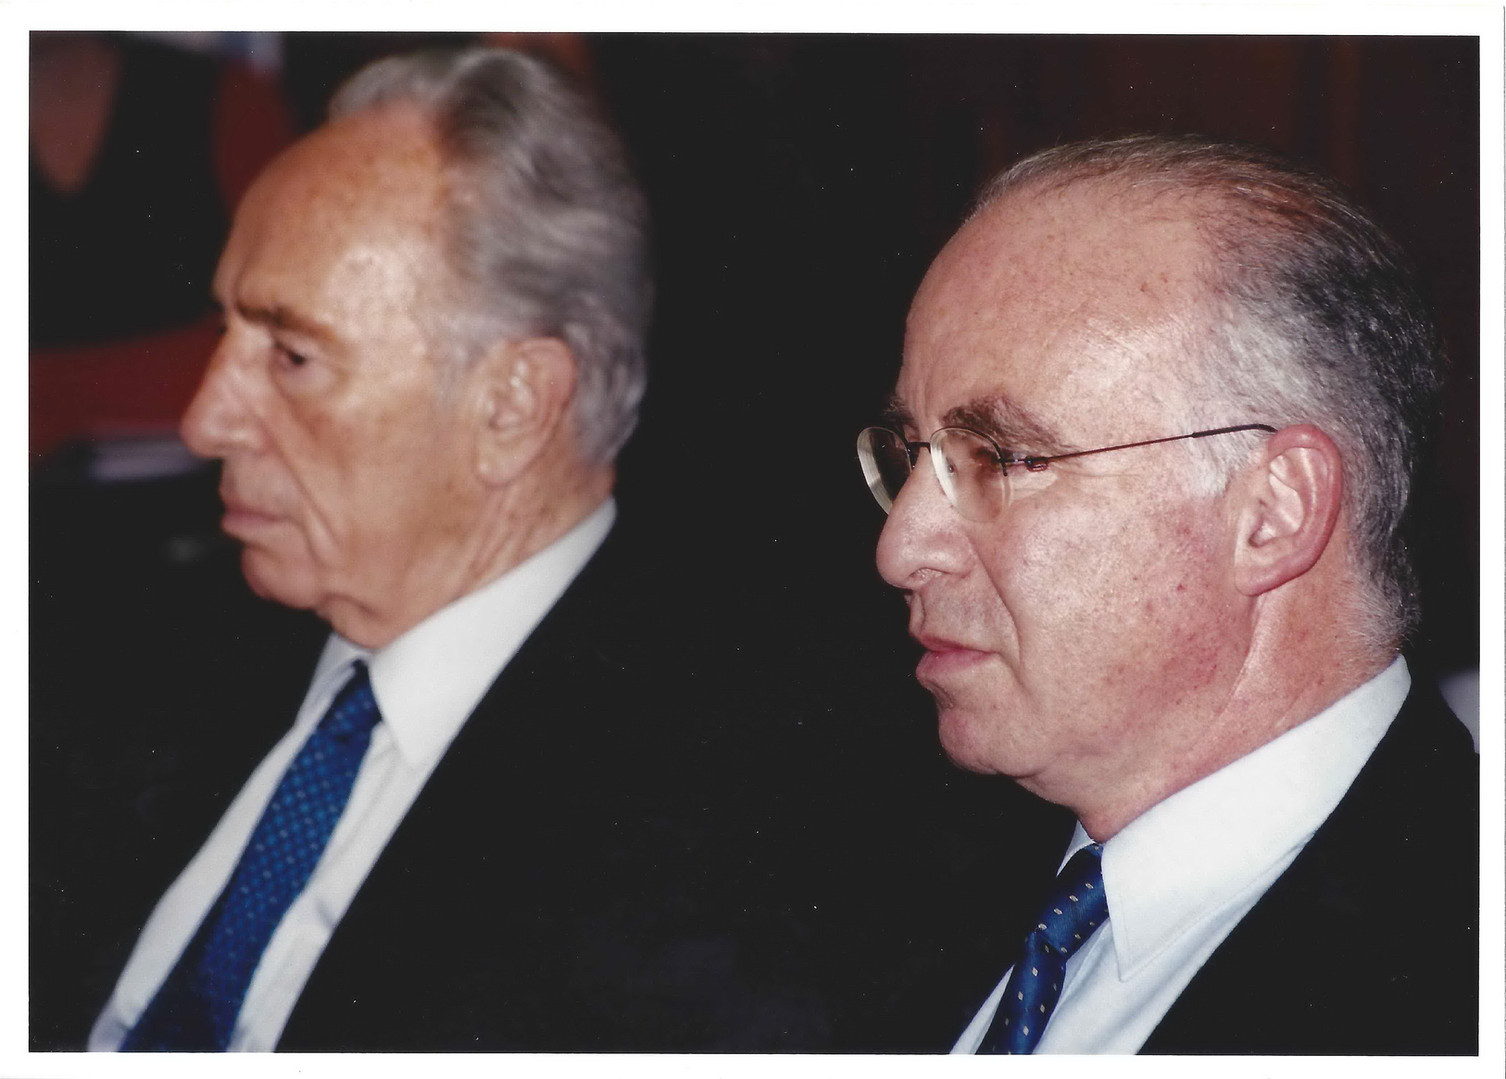 With Israeli Foreign Minister, Shimon Peres